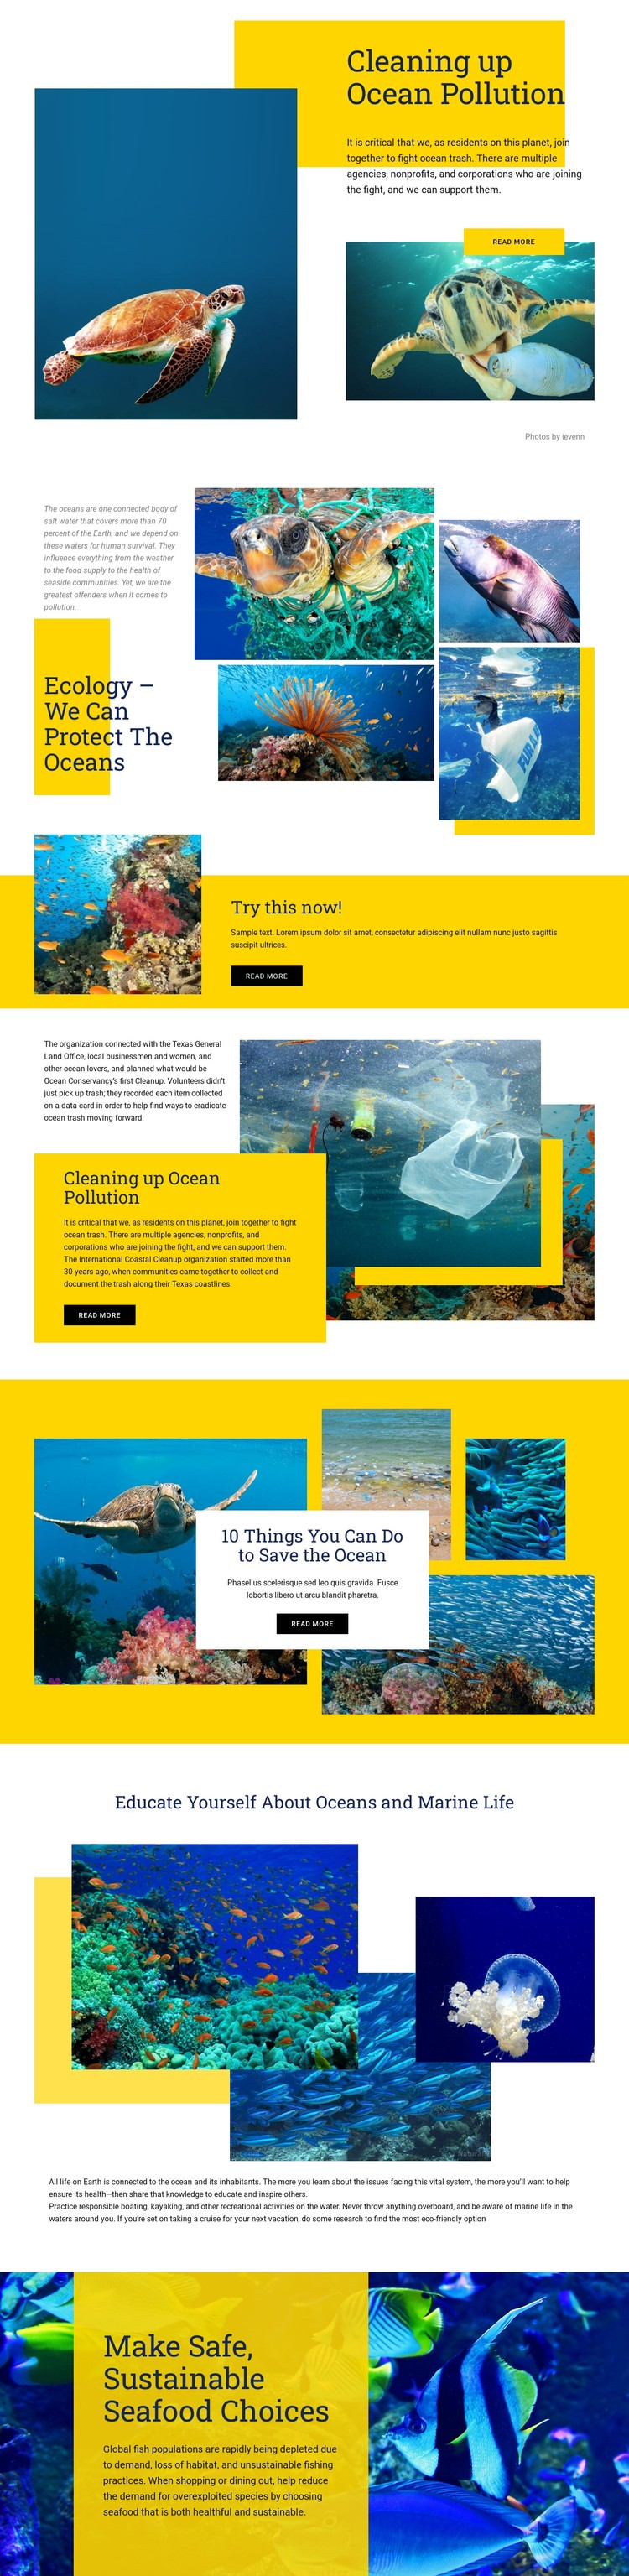 Protect The Oceans Static Site Generator